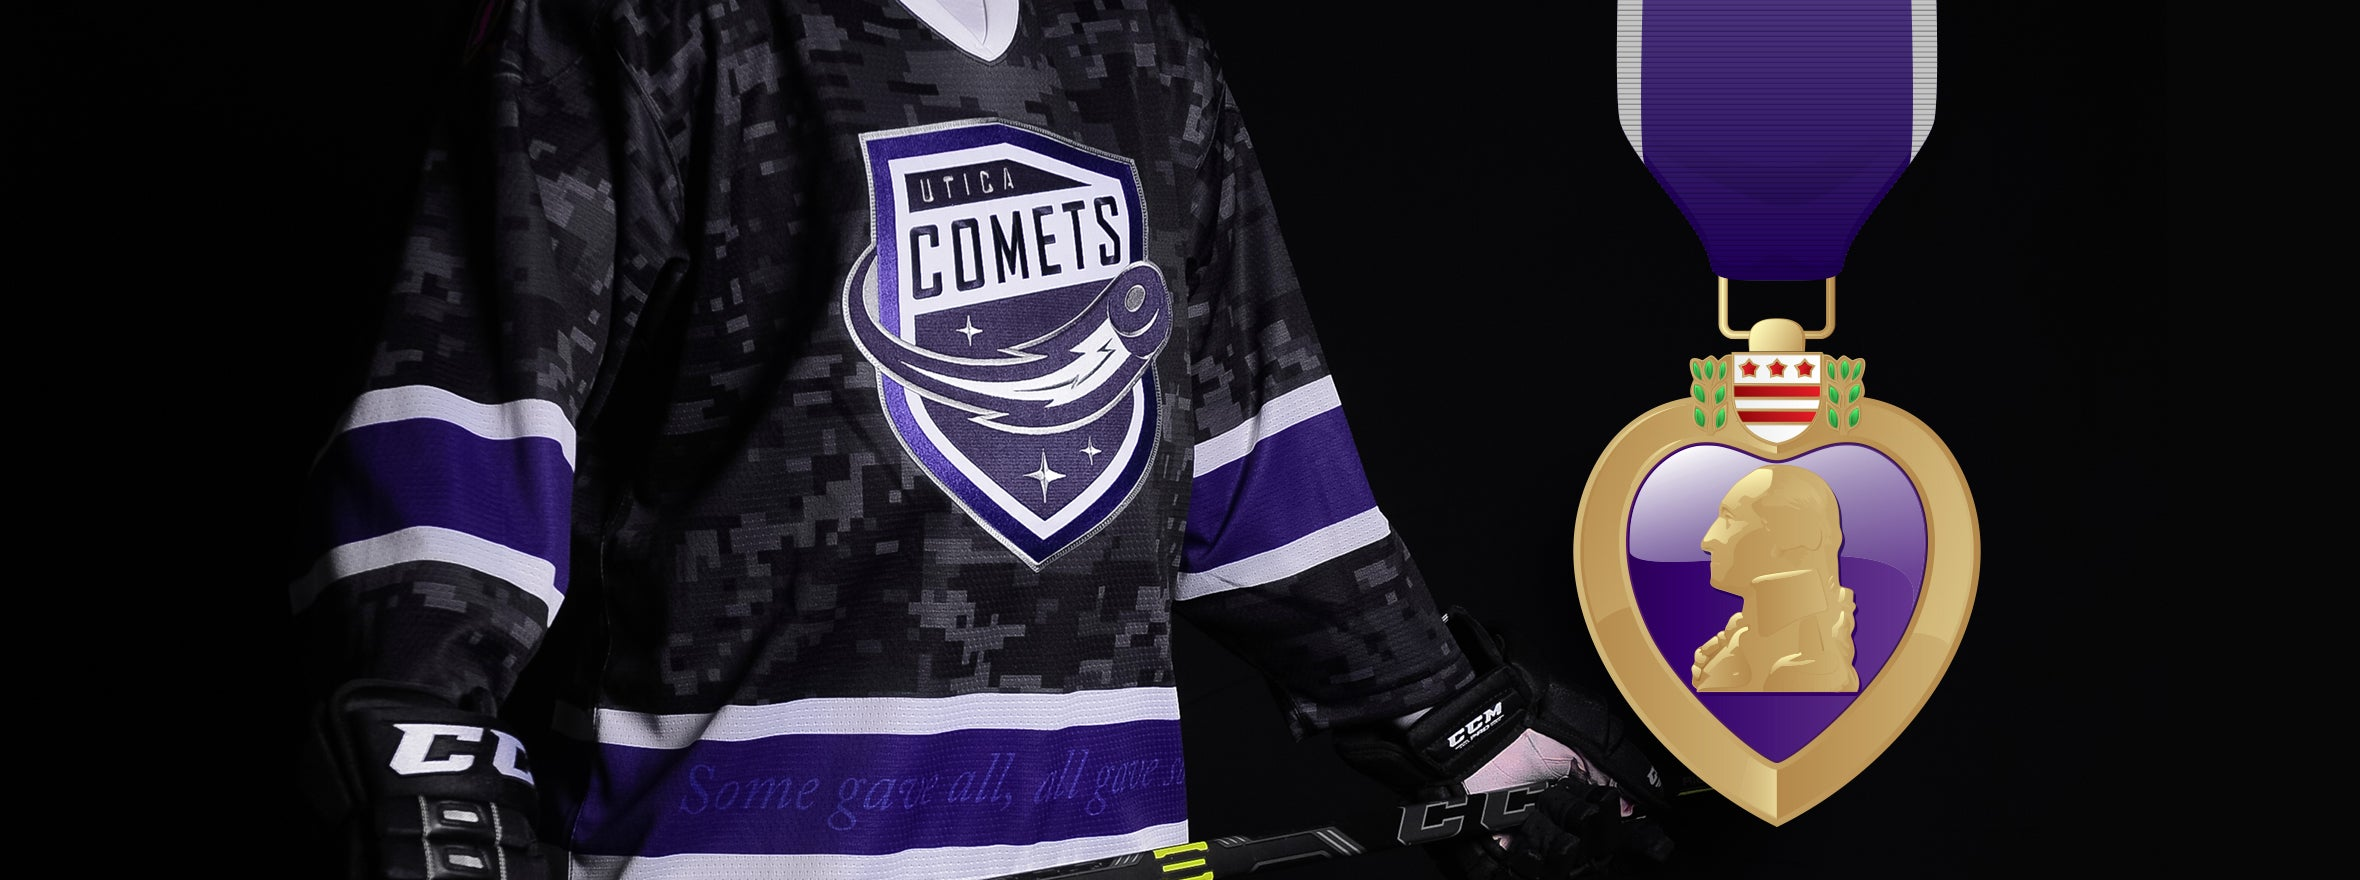 UTICA COMETS TO BE RECOGNIZED AS PURPLE HEART